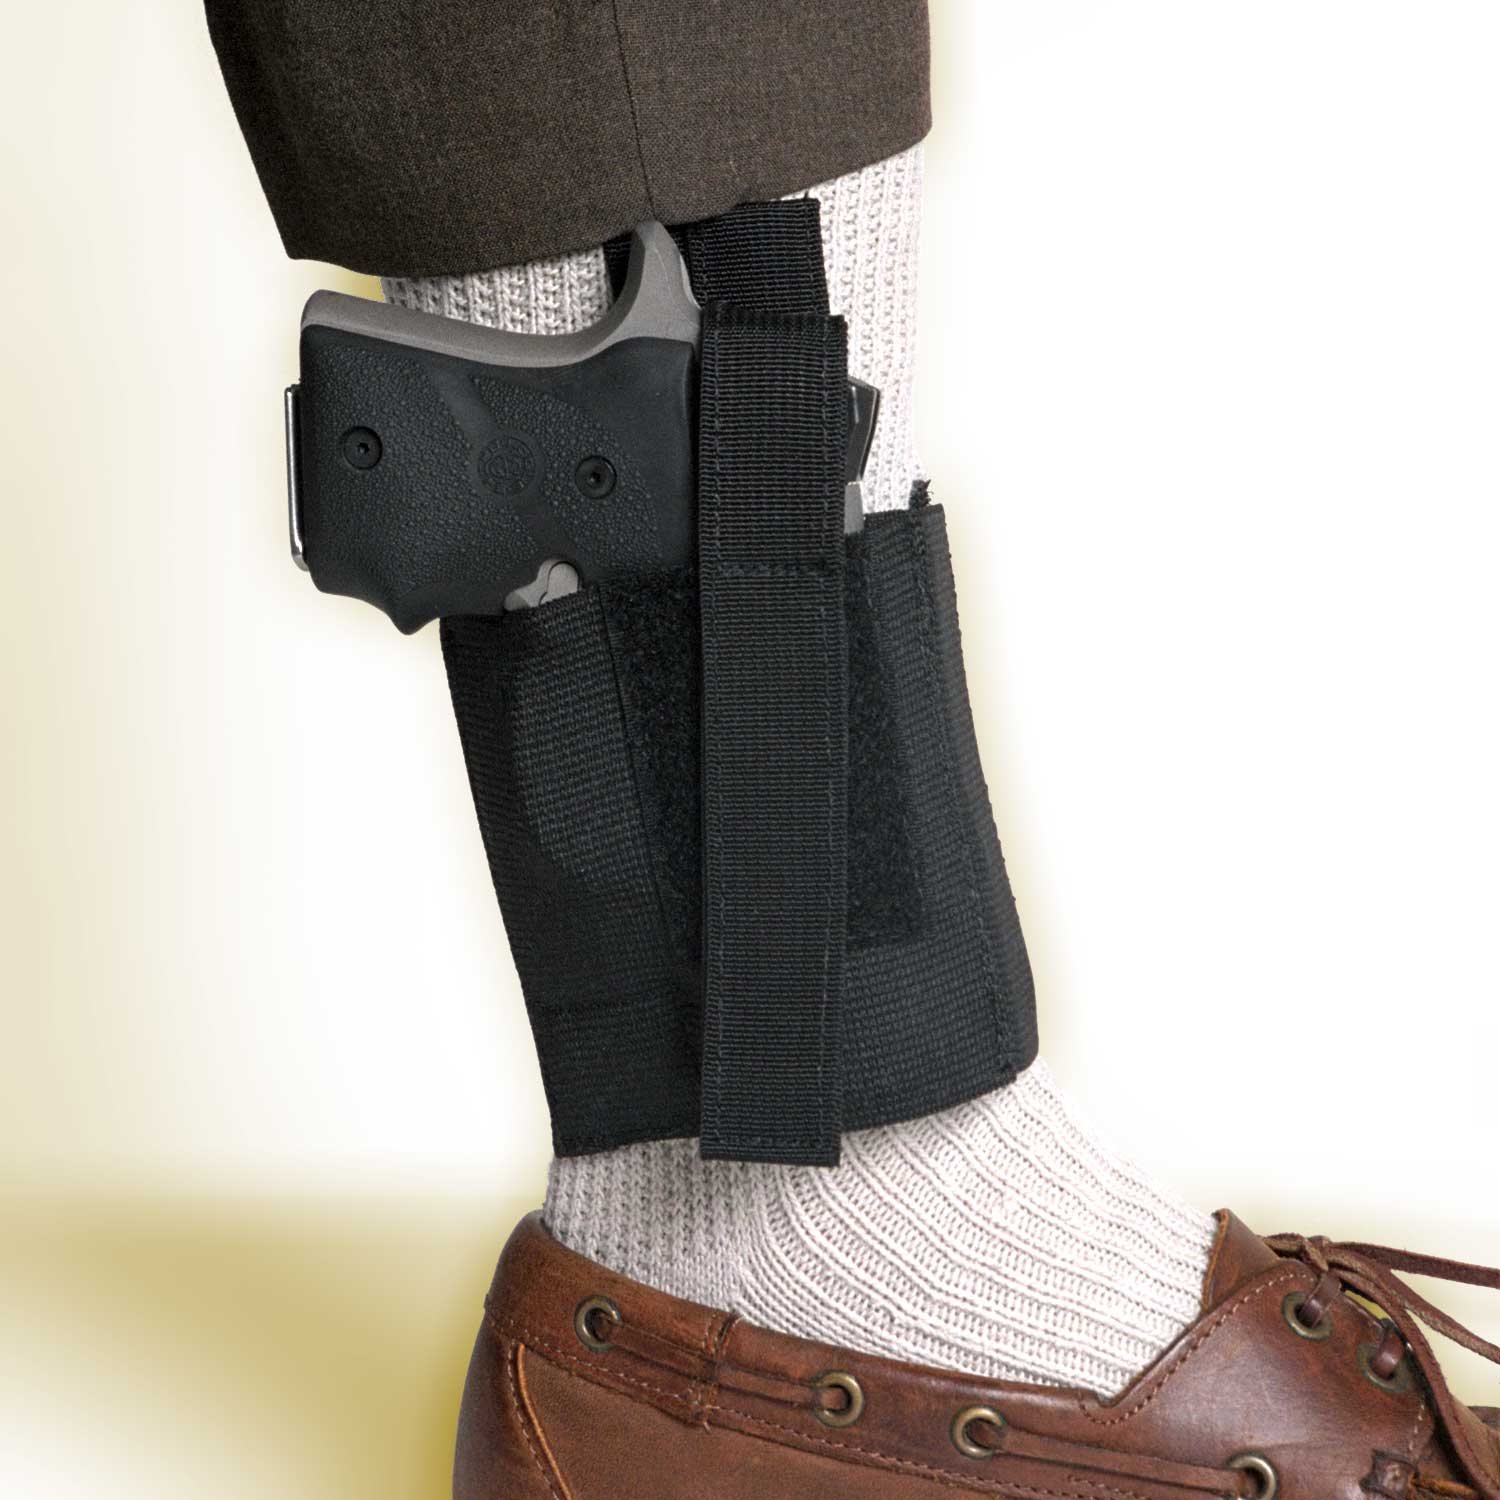 Ankle Holster  Concealed Carry with Comfort